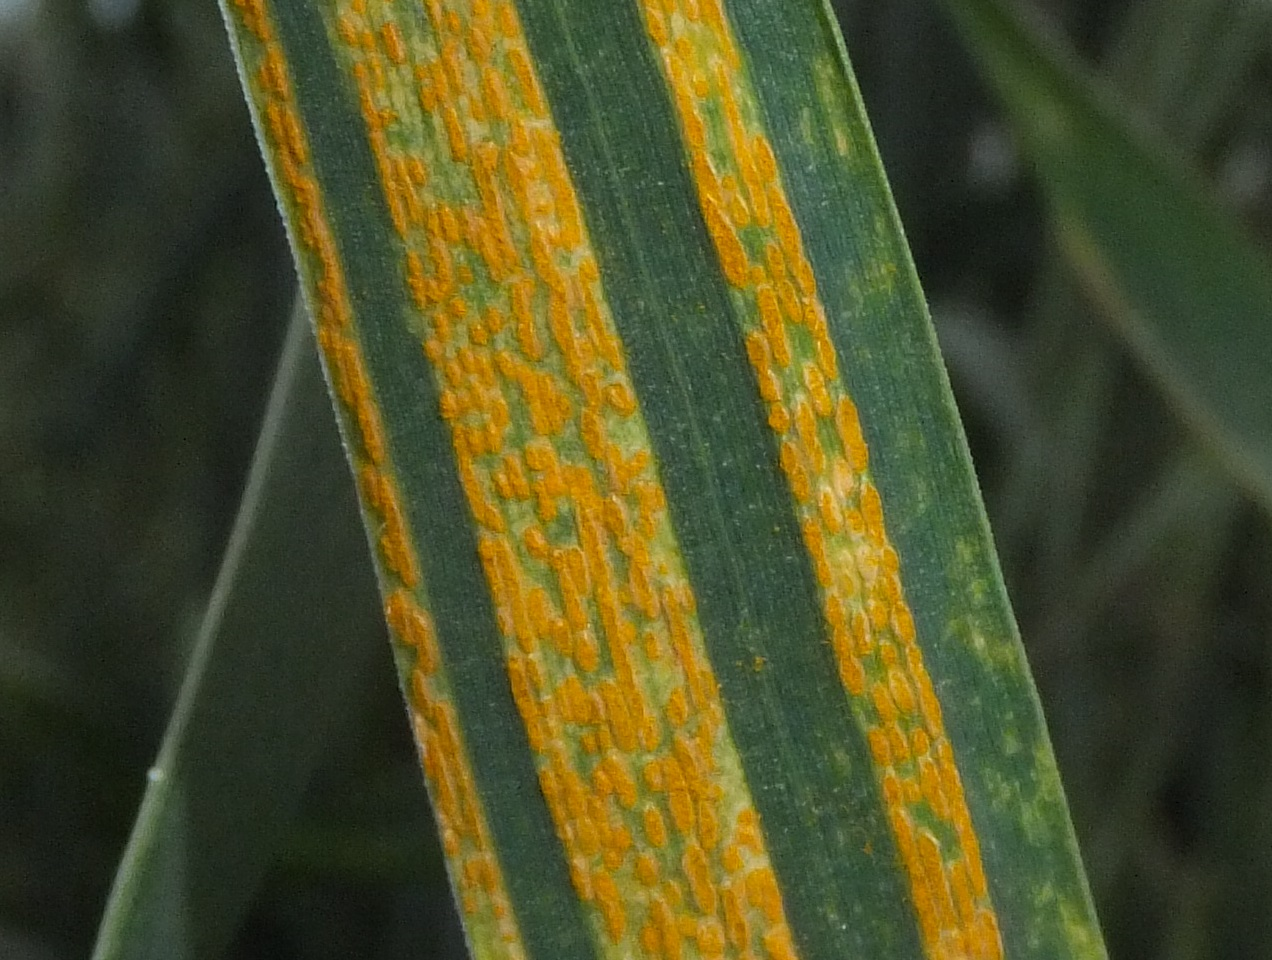 Yellow rust of wheat is one of the three wheat rust diseases principally found in wheat grown in cooler environments